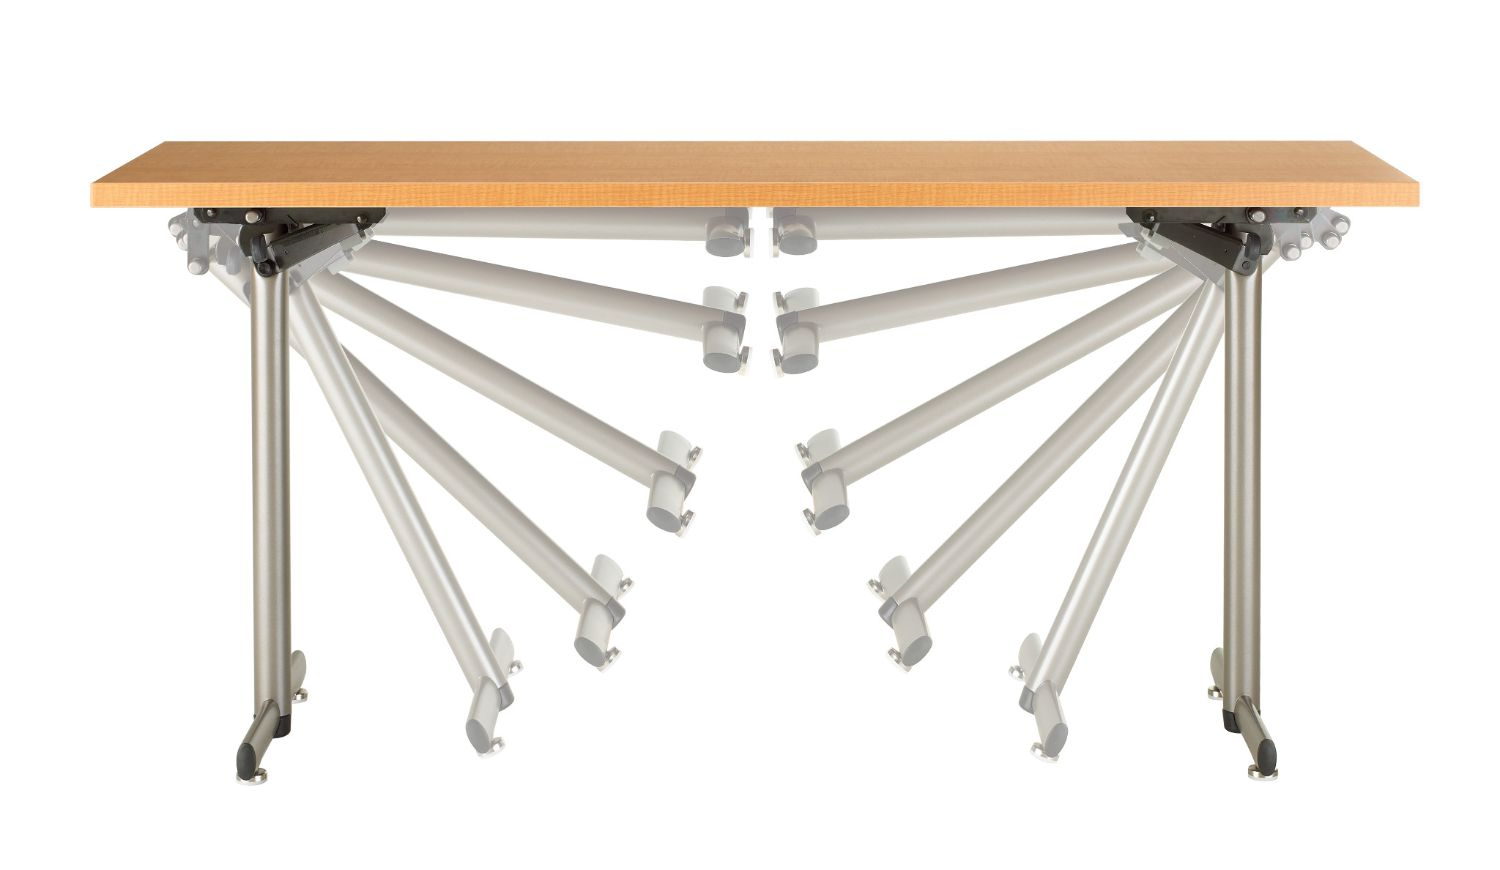 folding legs of portico table